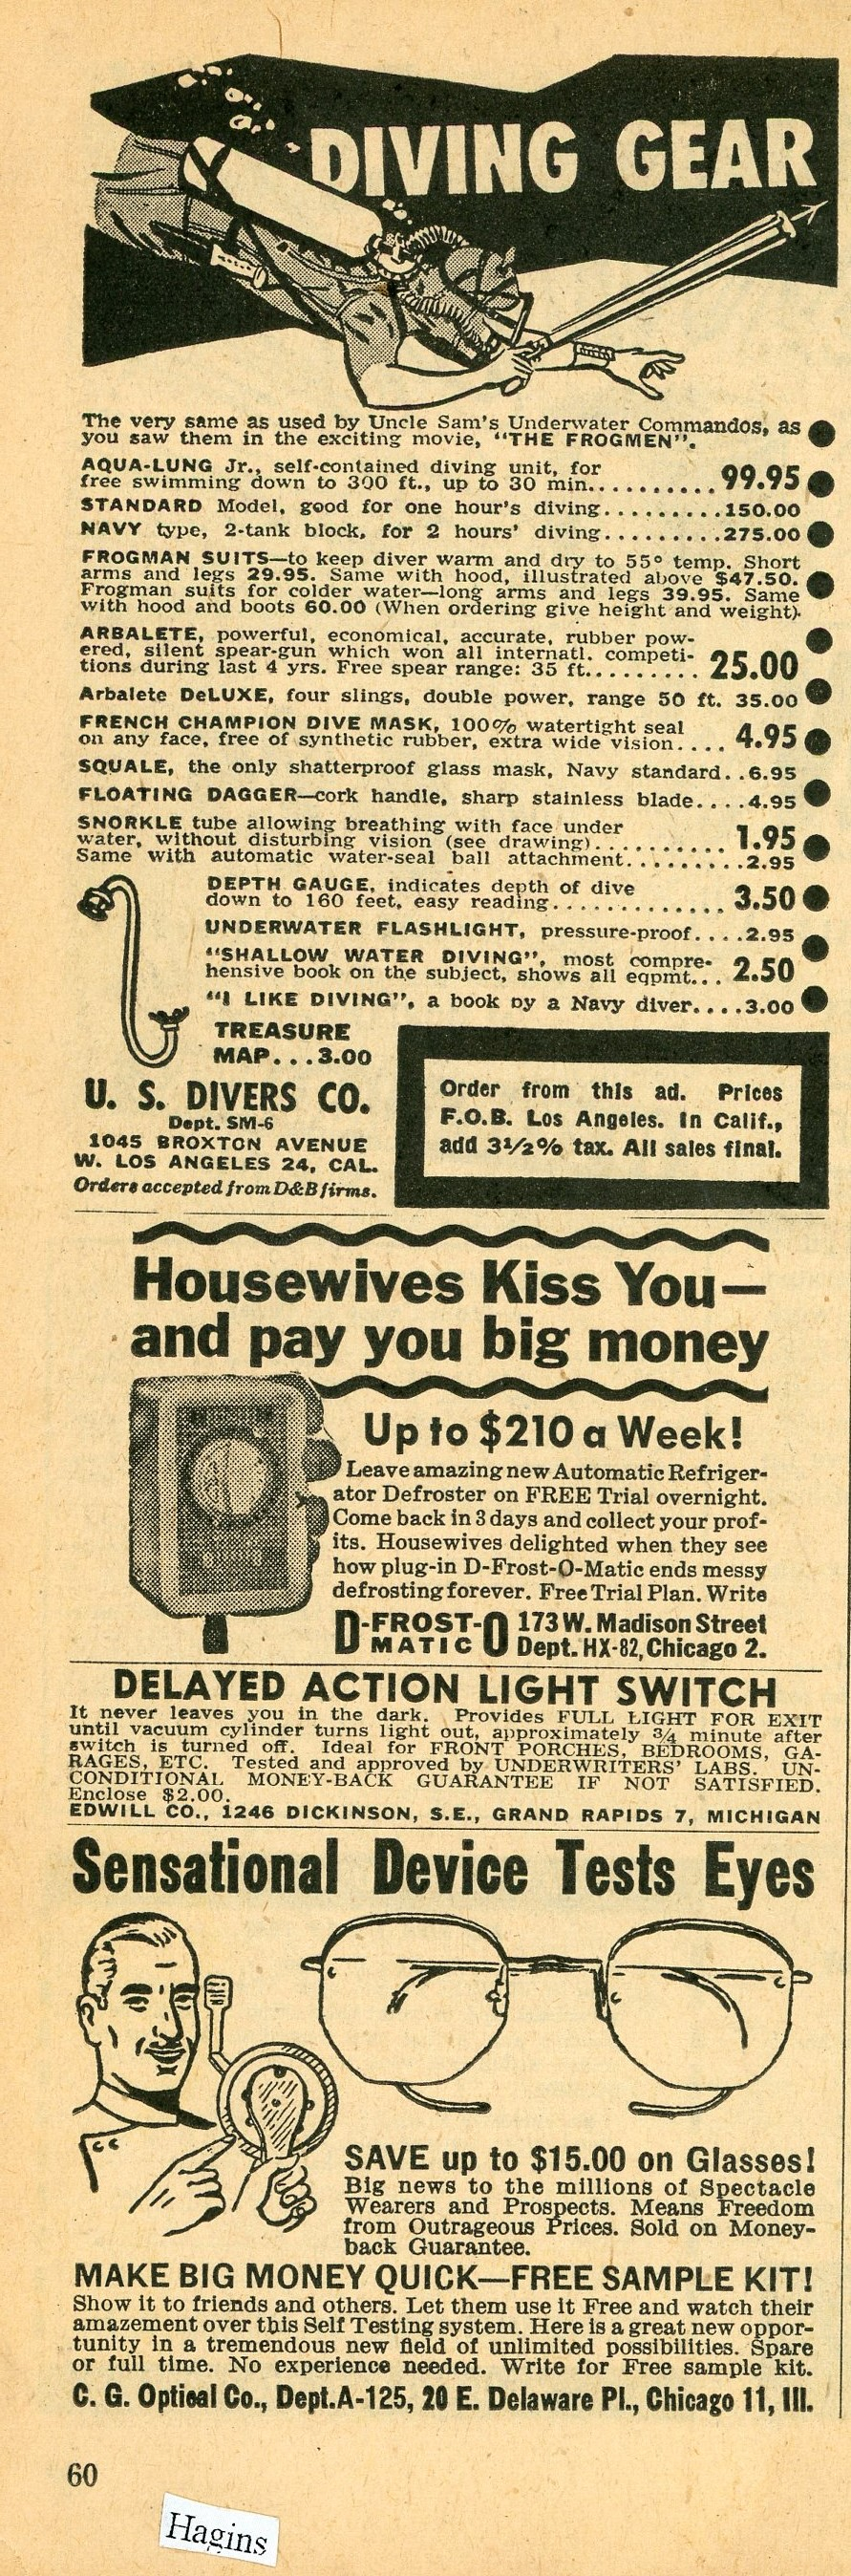 1952 ads. I believe everything. Hagins collection.